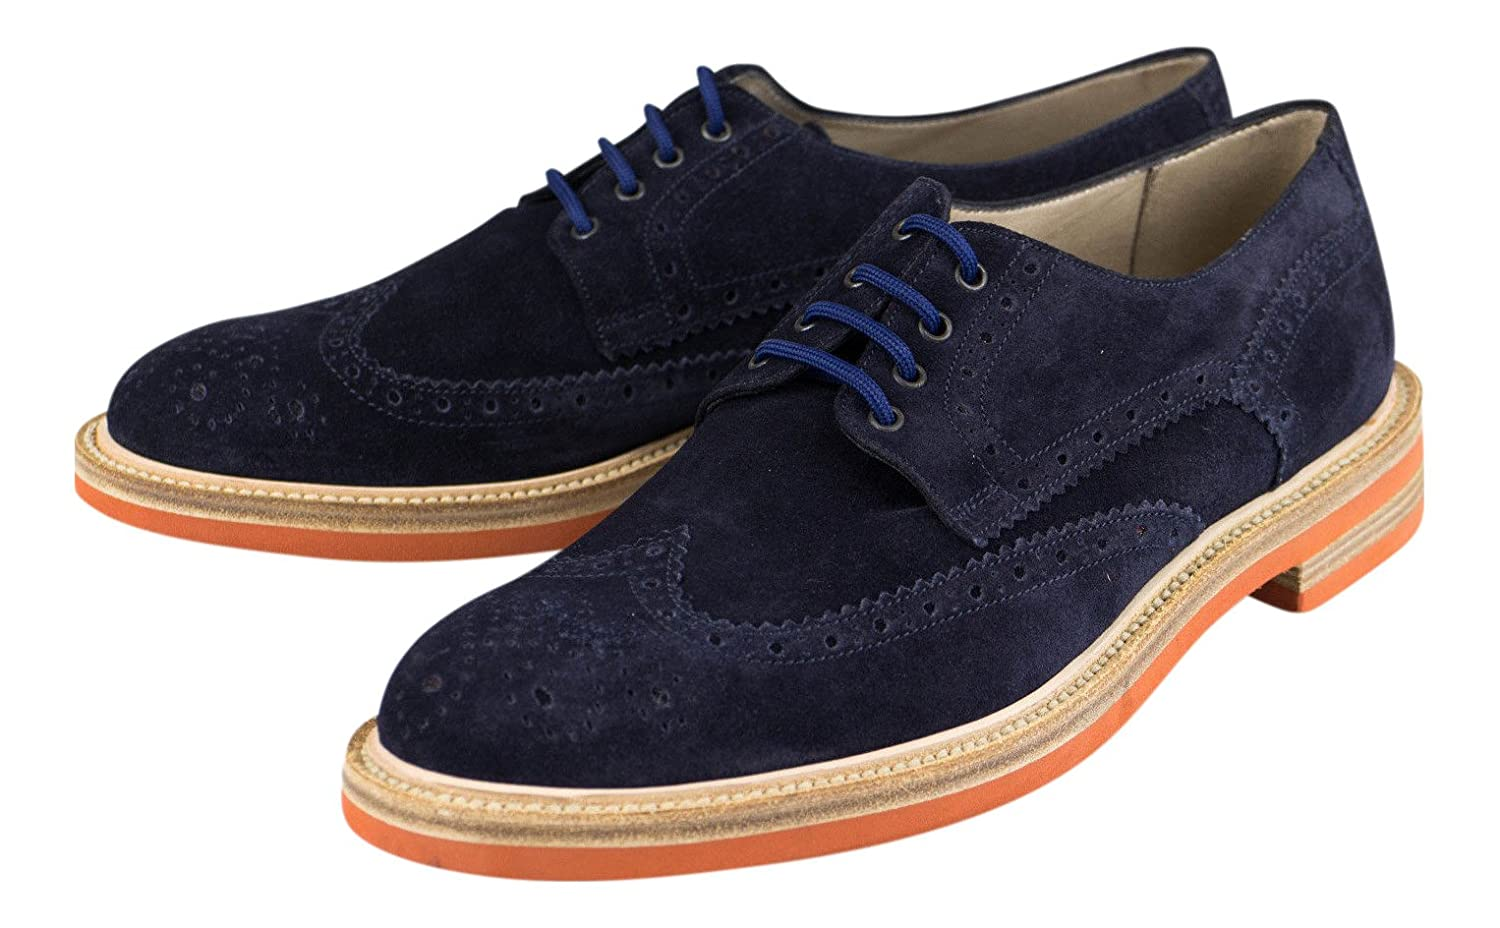 Canali 1934 bluee Suede Leather with Wingtip Design Derby Dress shoes Size 9.5 42.5